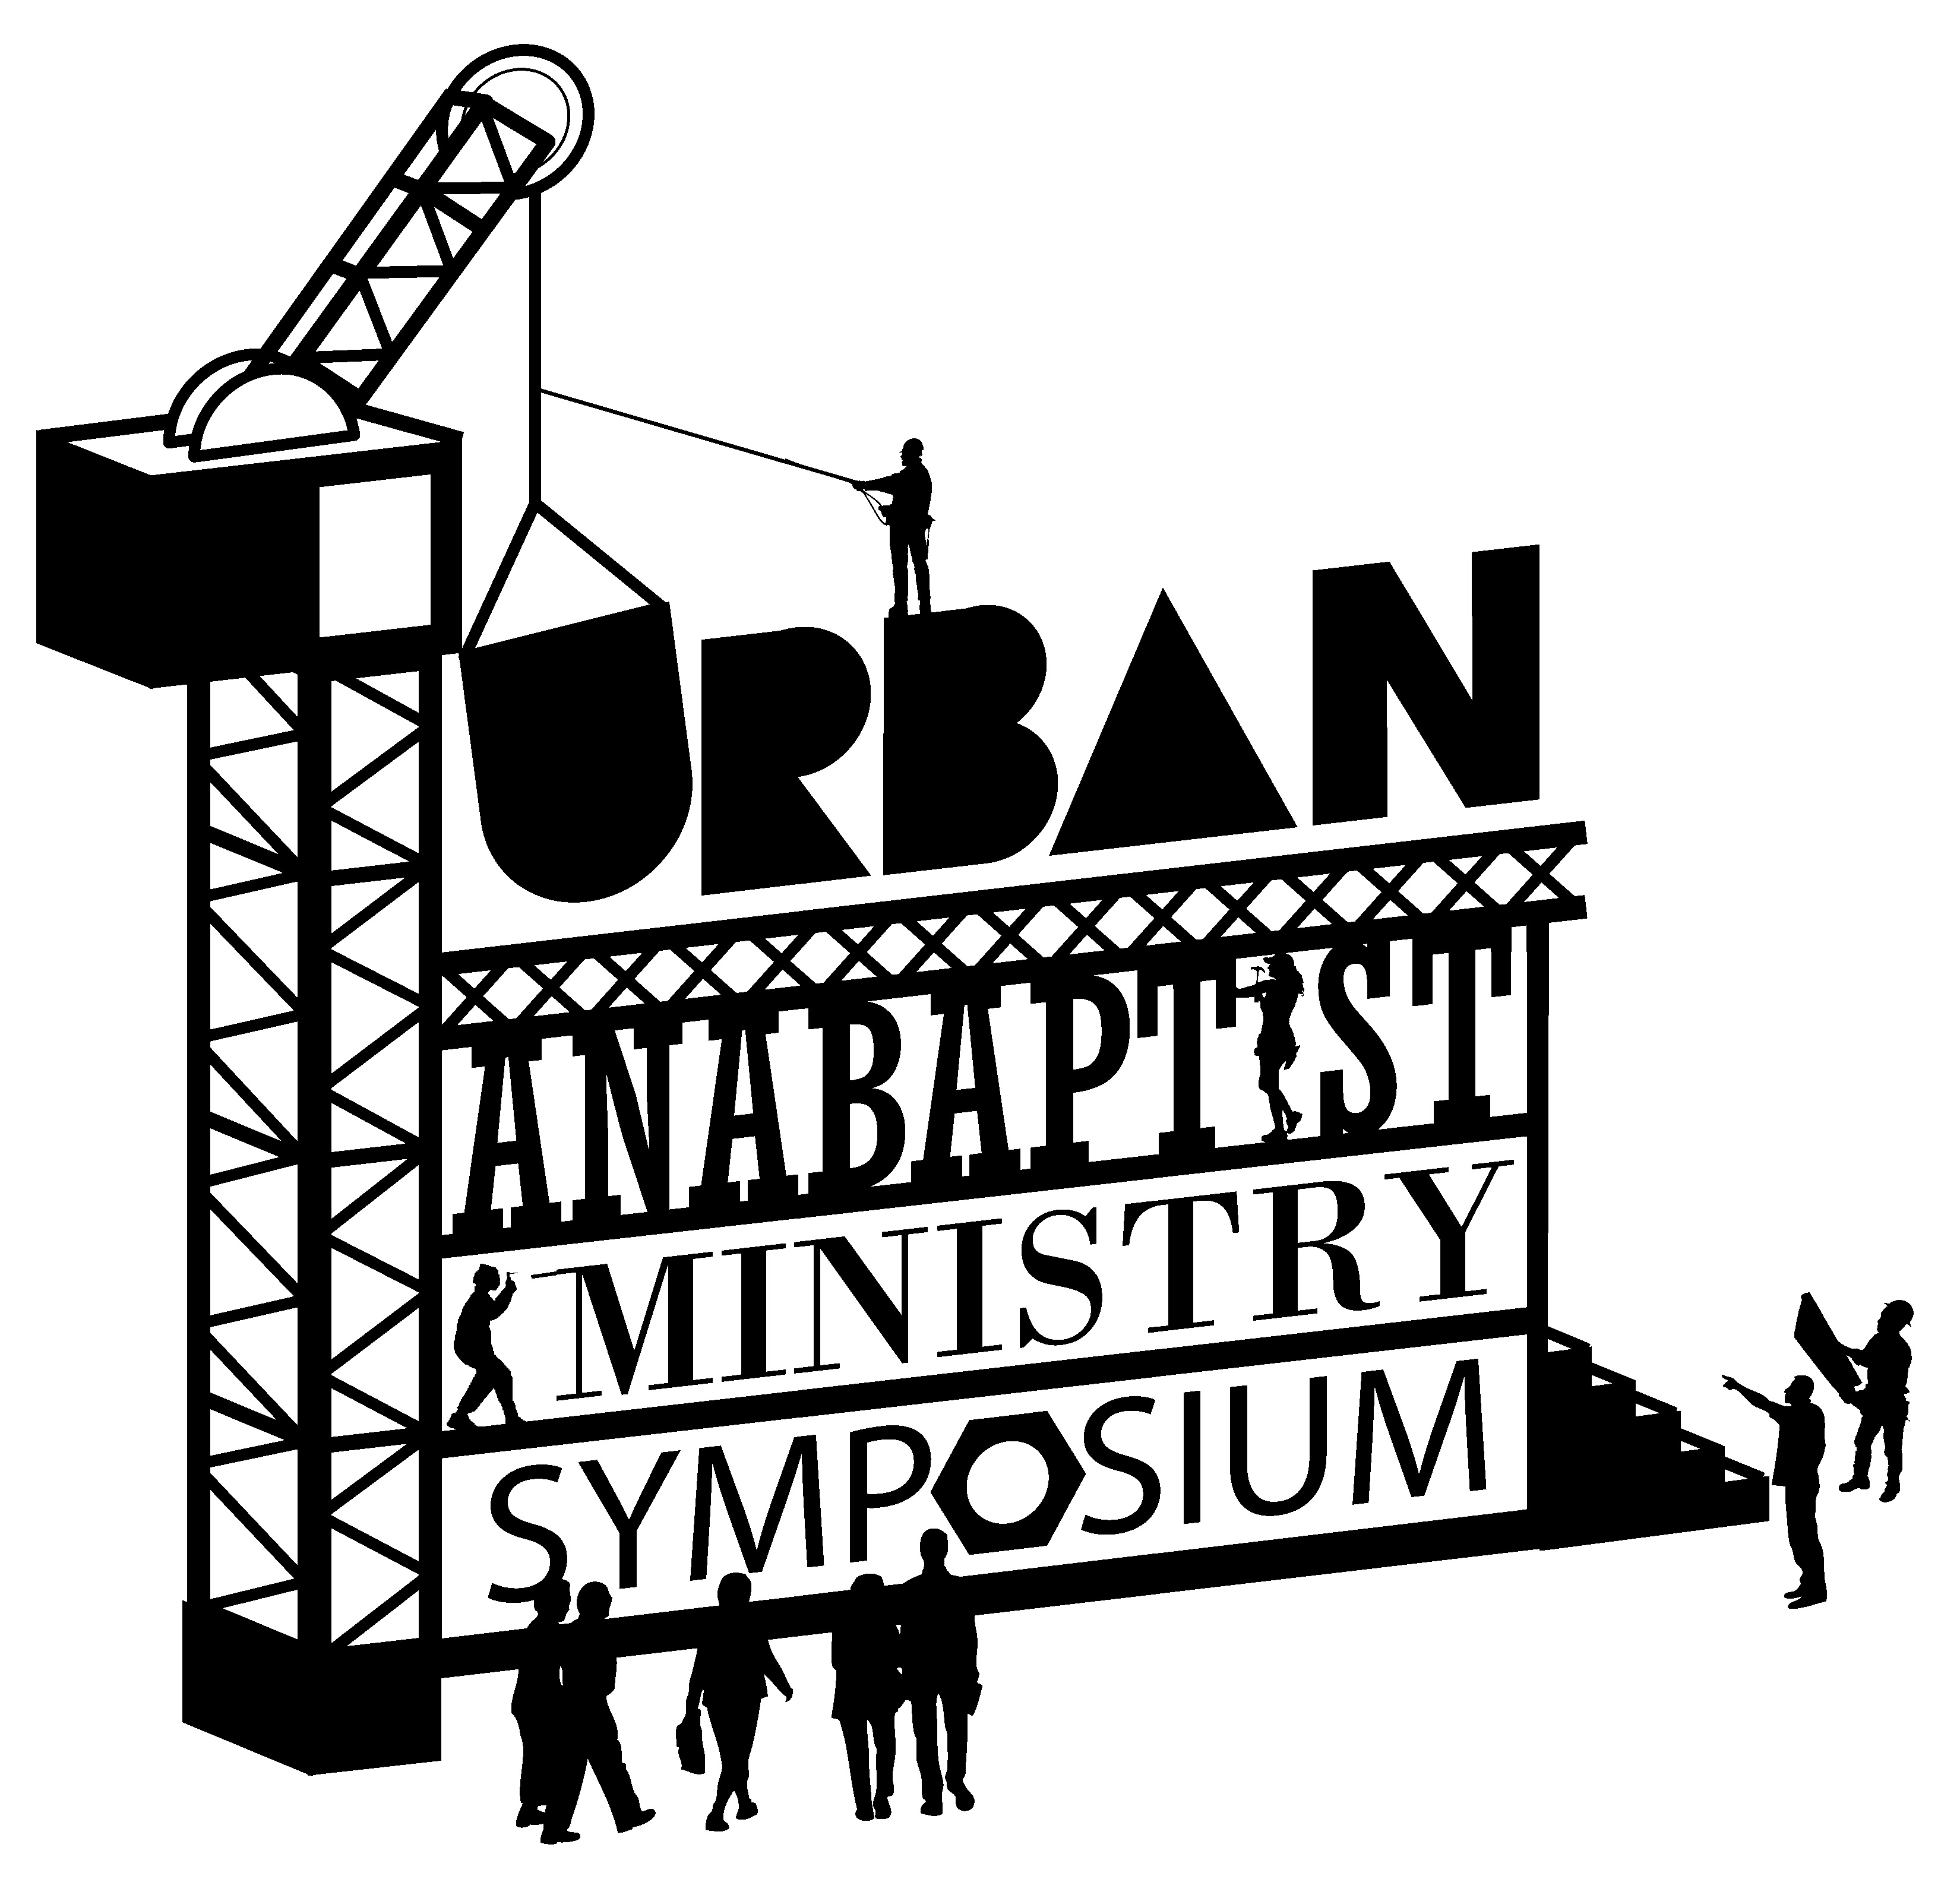 Grassroots leaders to gather for Beyond Ideas Urban Anabaptist.